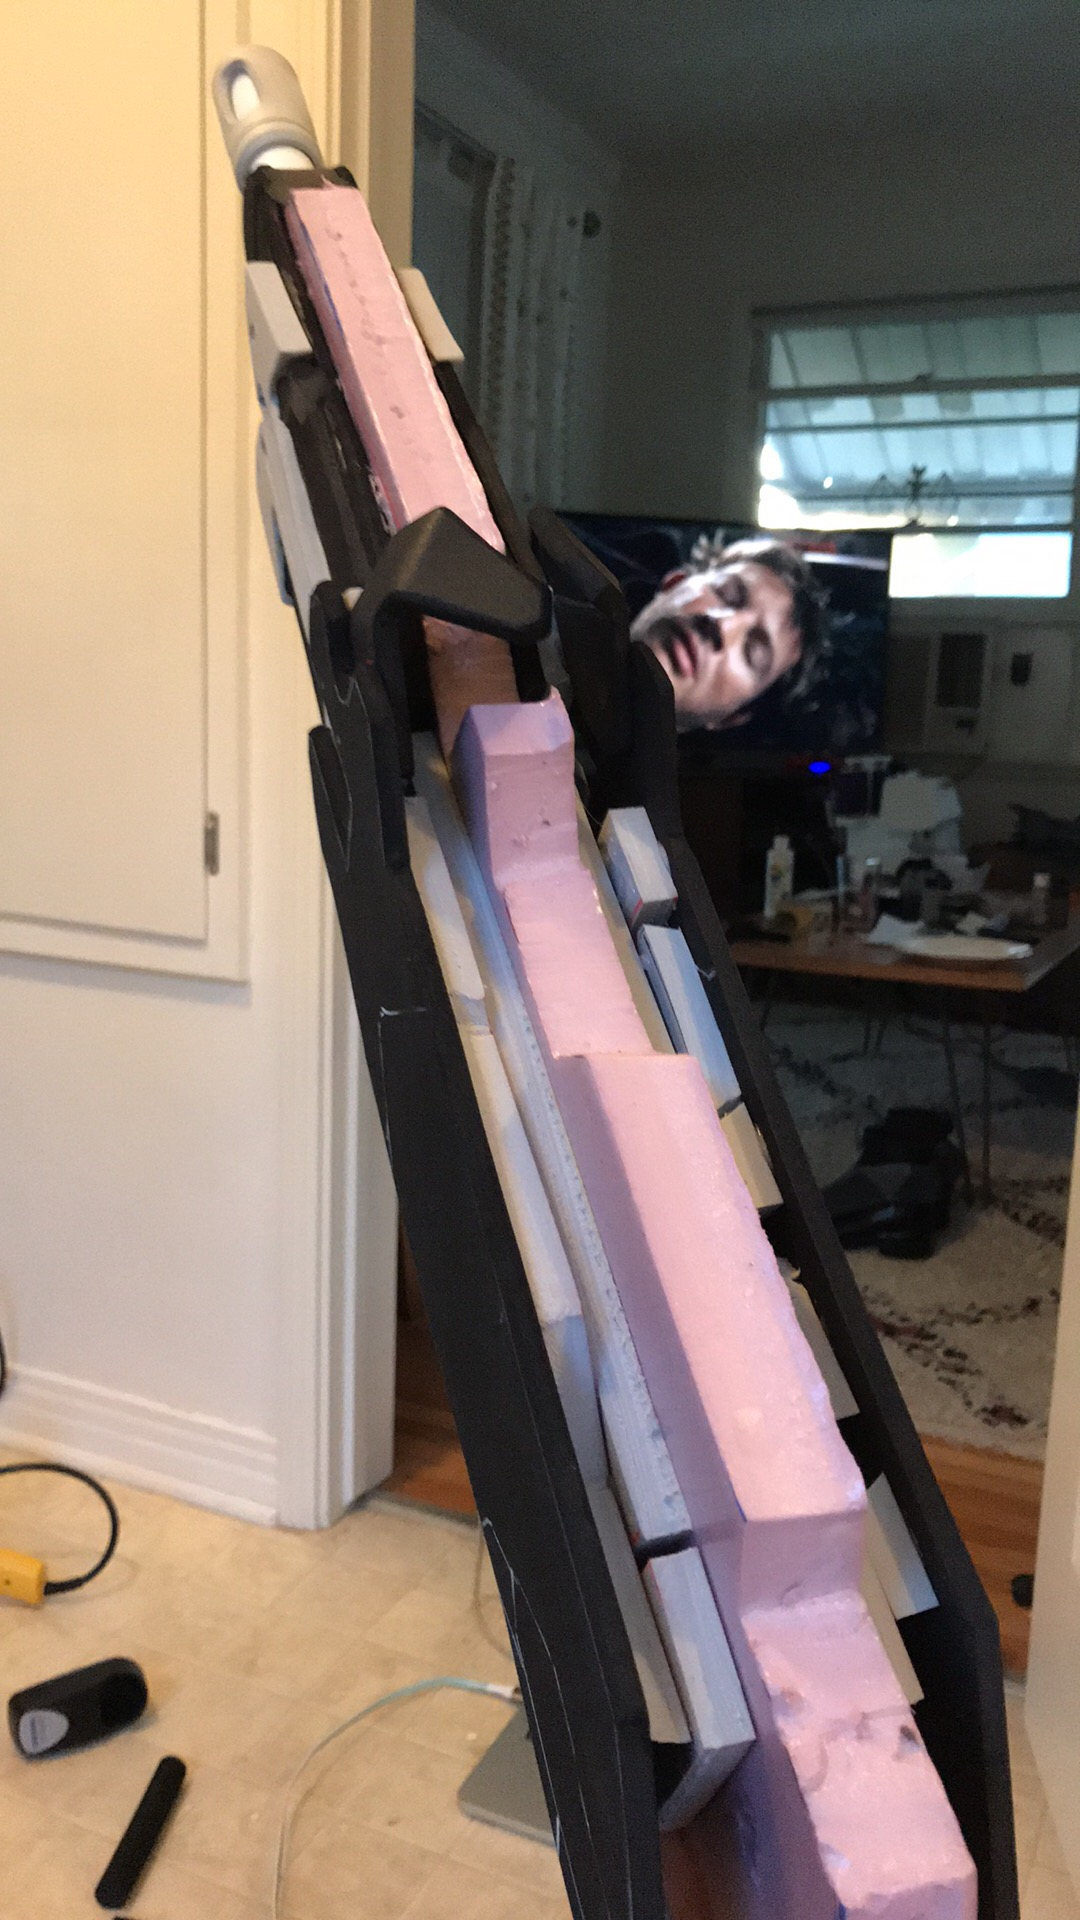 The gun was a layer of pink insulation foam with layers of various densities of EVA foam on top. This ended up making the gun thicker than it is in-game, but I realized too late! (And yep that's  Van Helsing  in the background.)